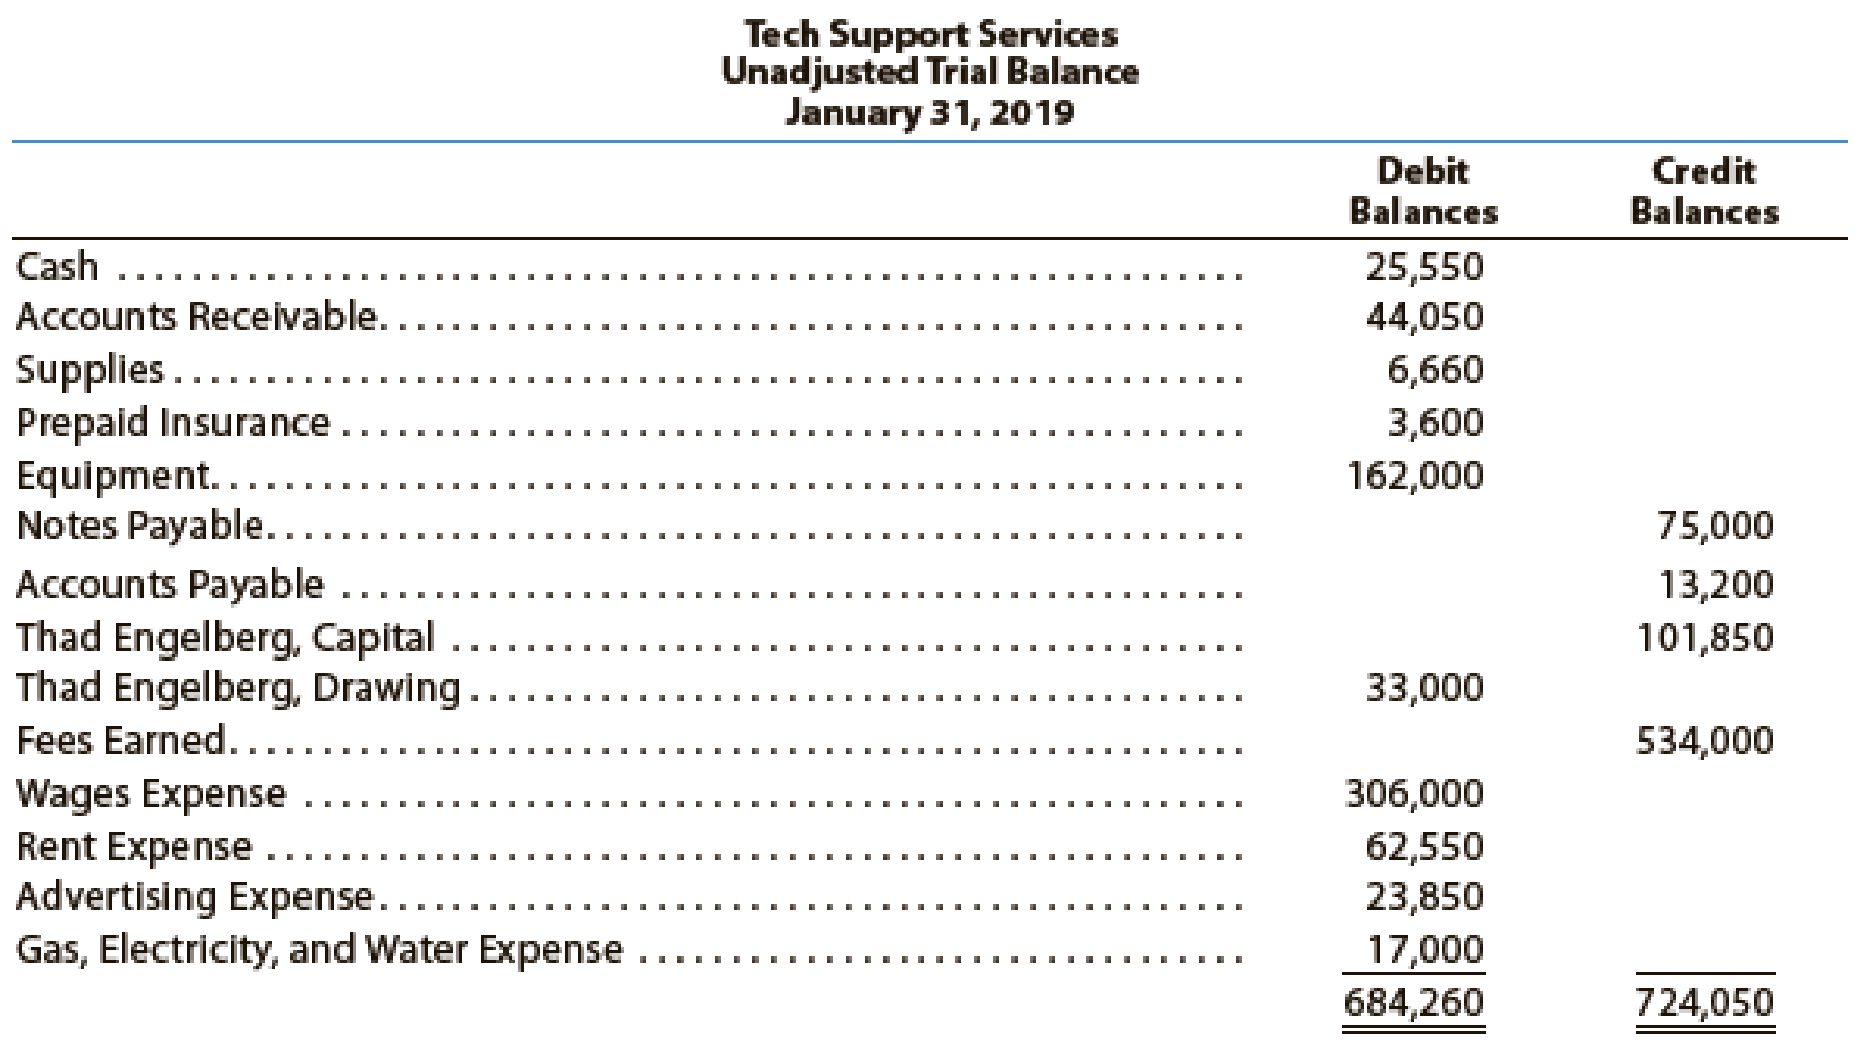 Tech Support Services Has The Following Unadjusted Trial